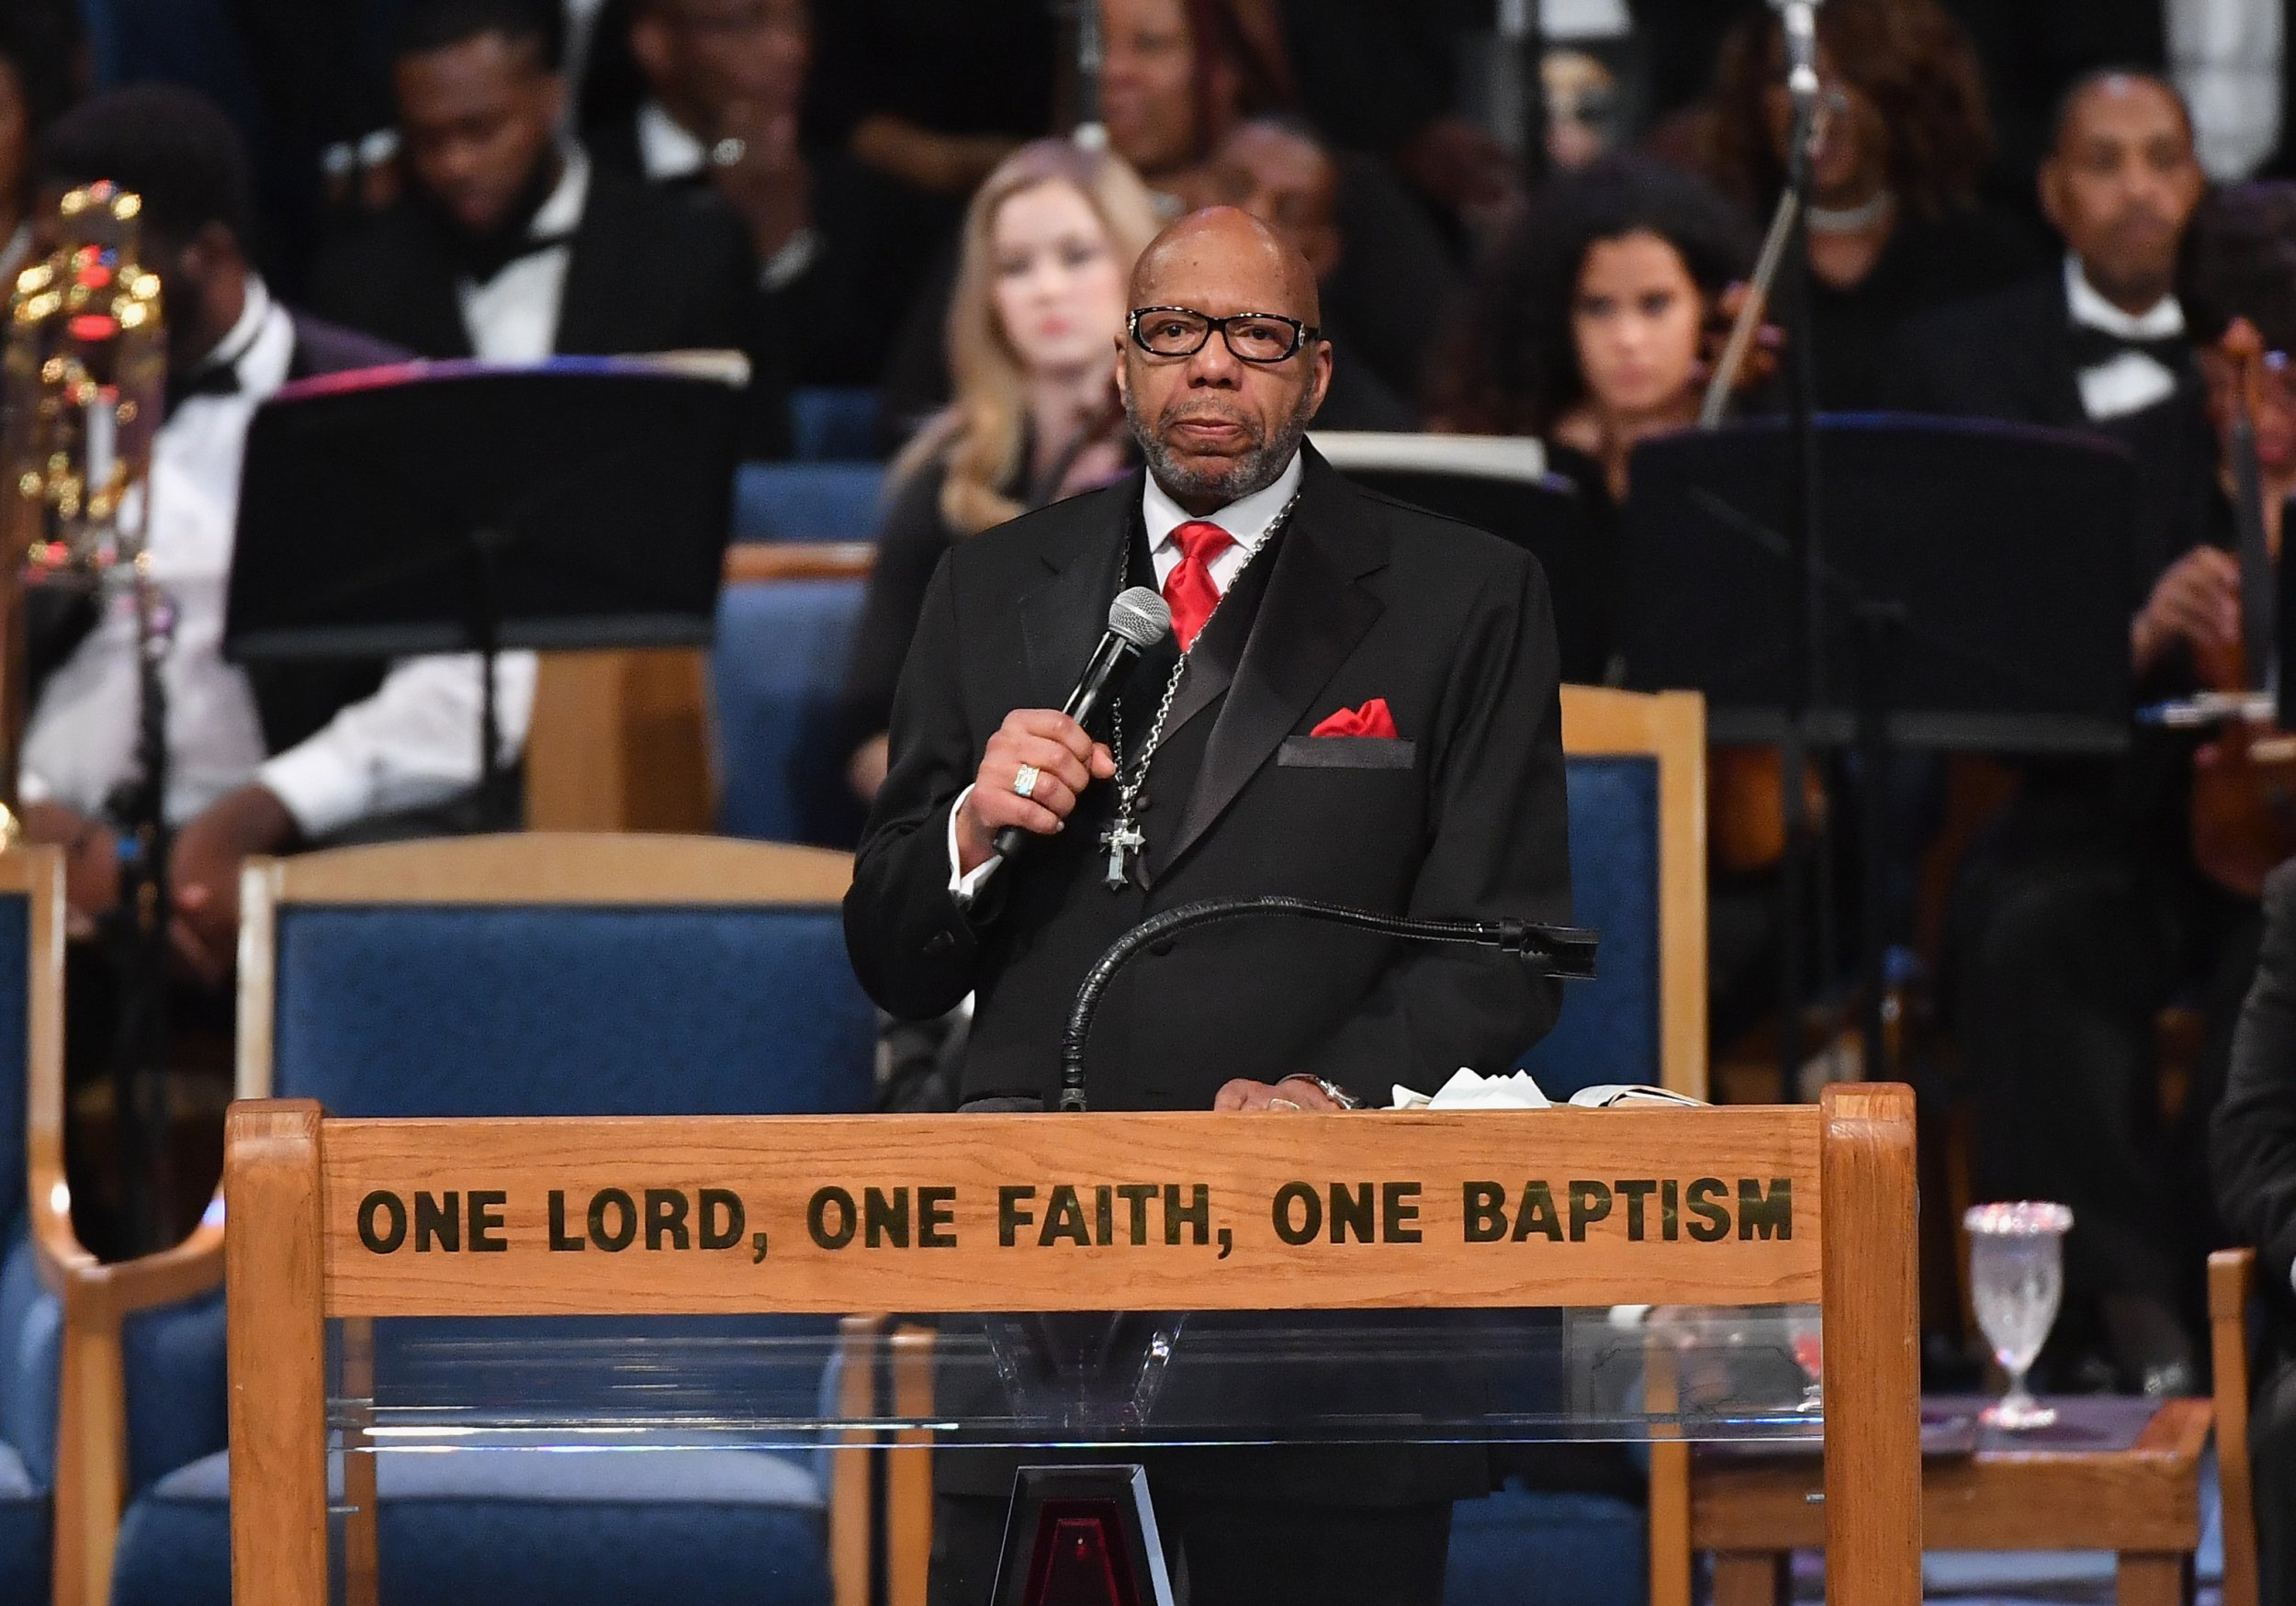 Aretha Franklin Was a God Girl: The Controversial Funeral